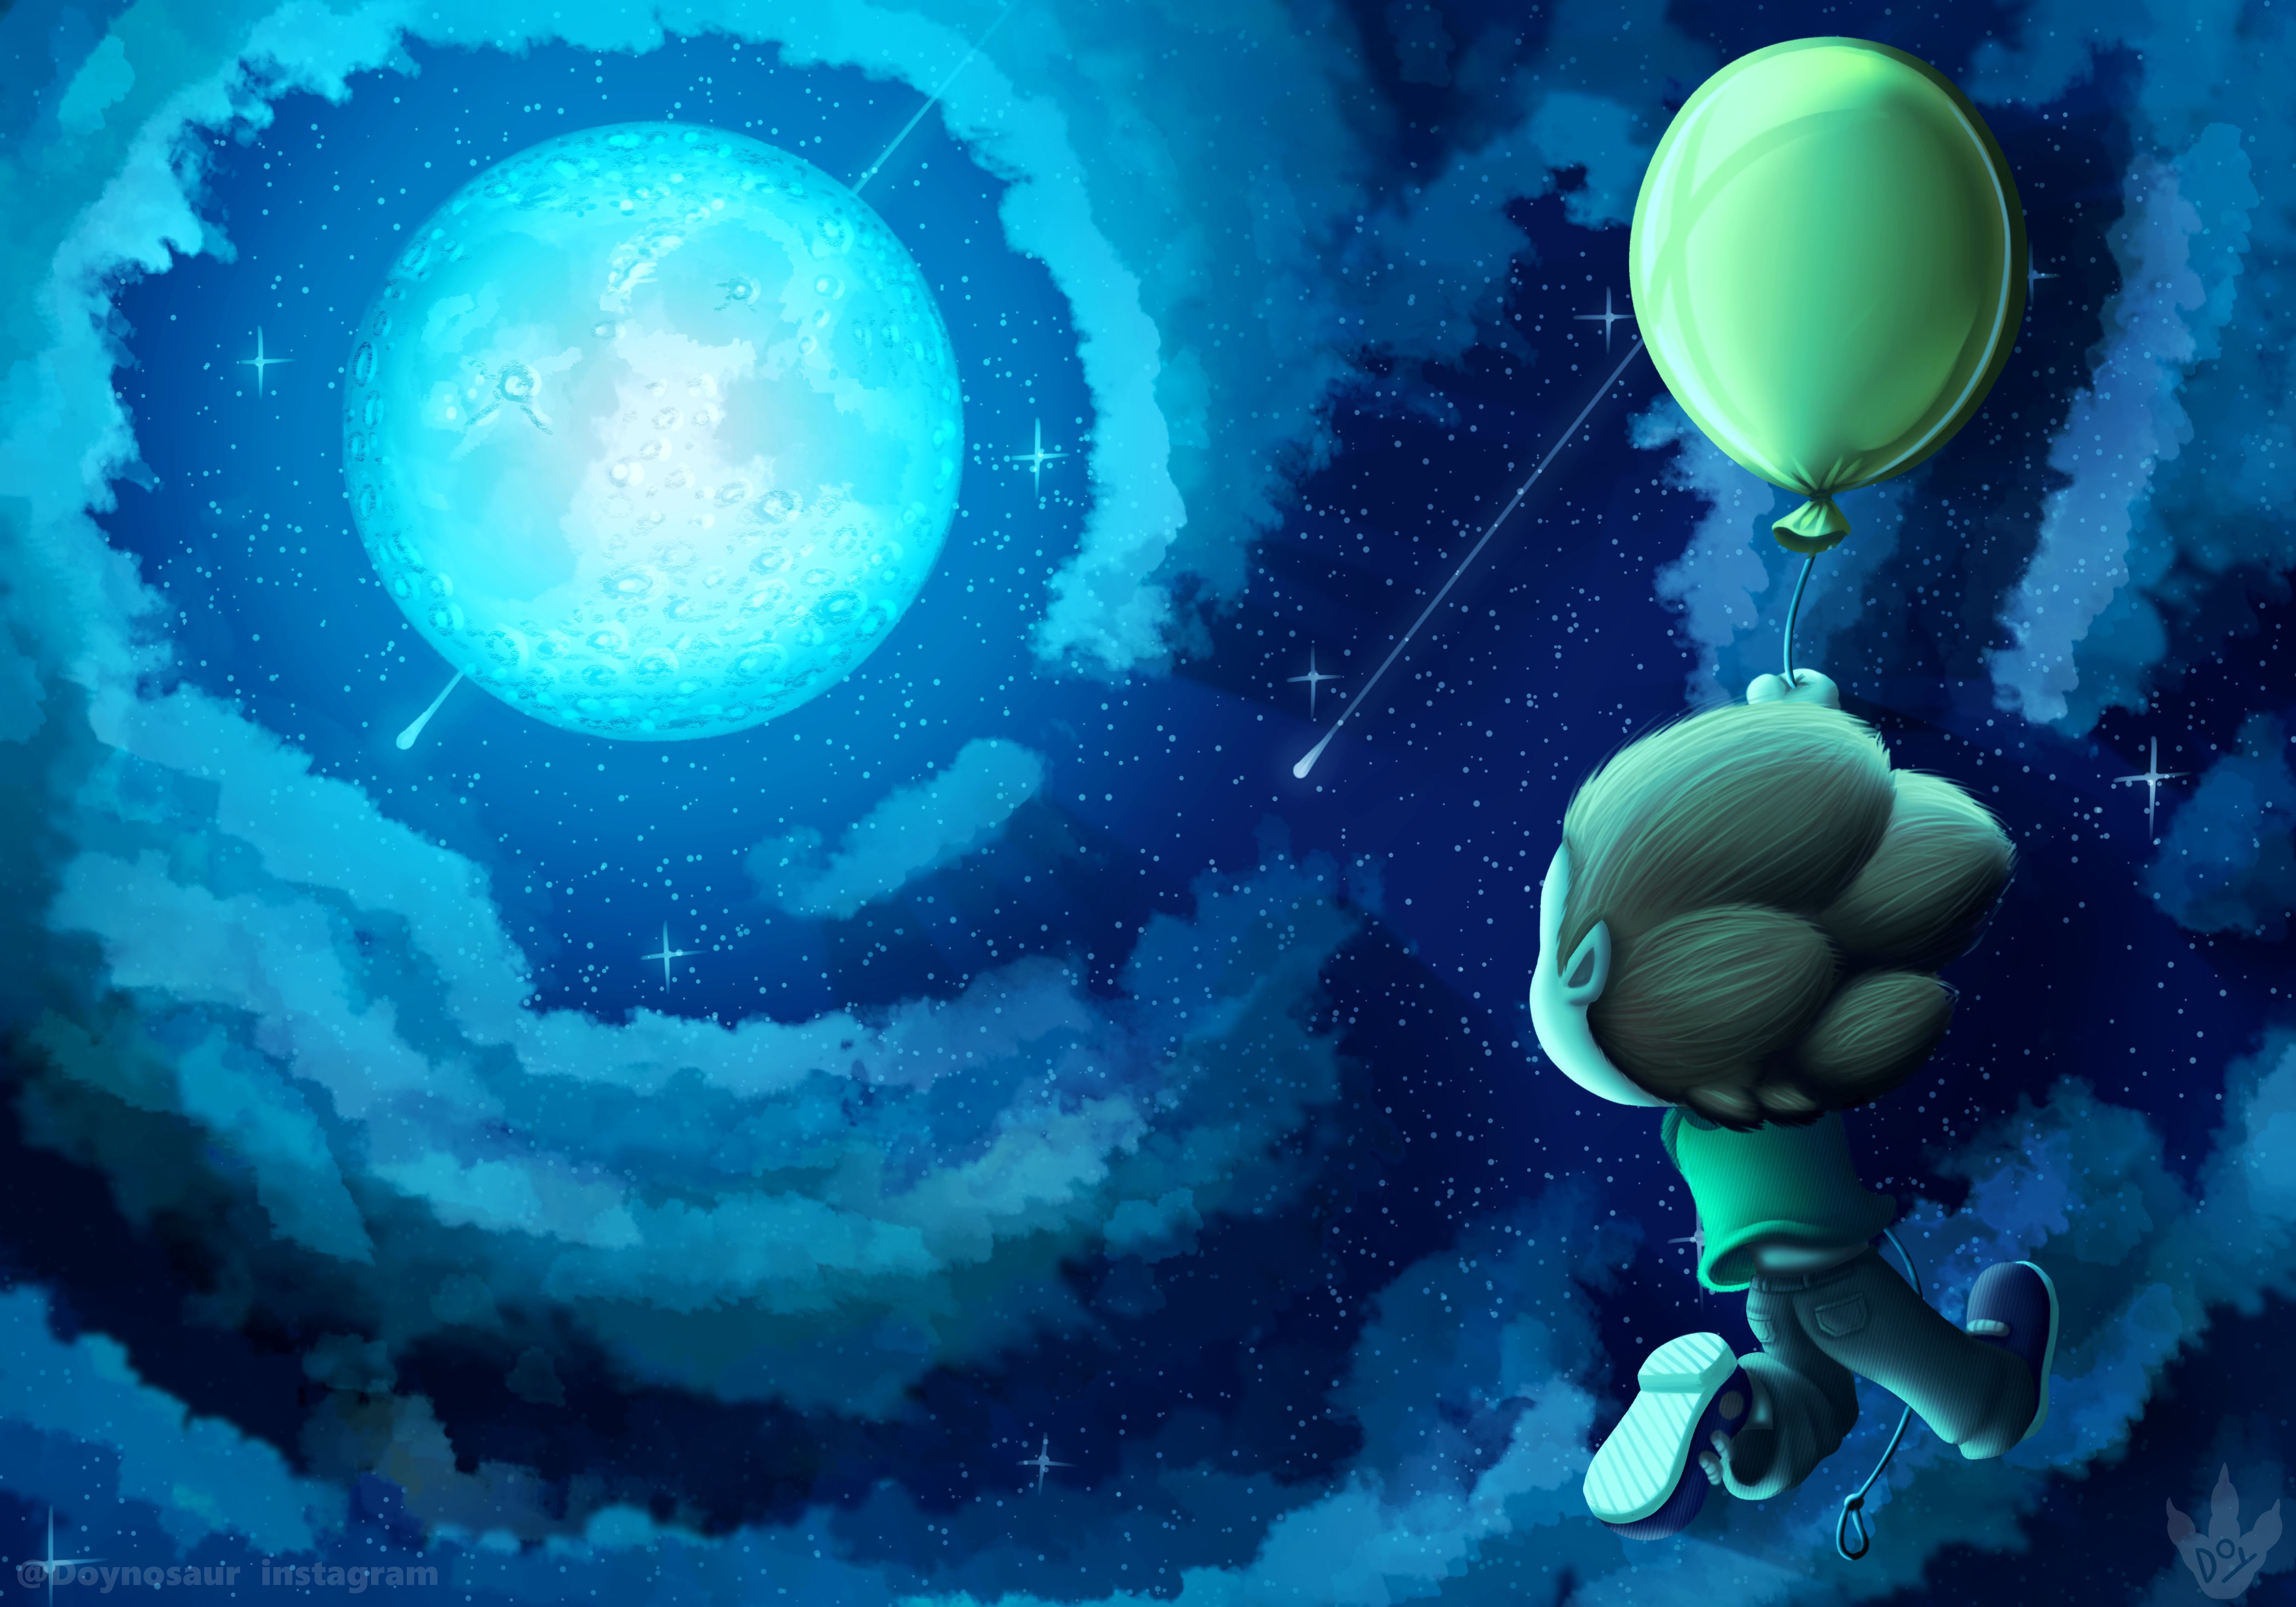 The boy that wanted to fly to the moon